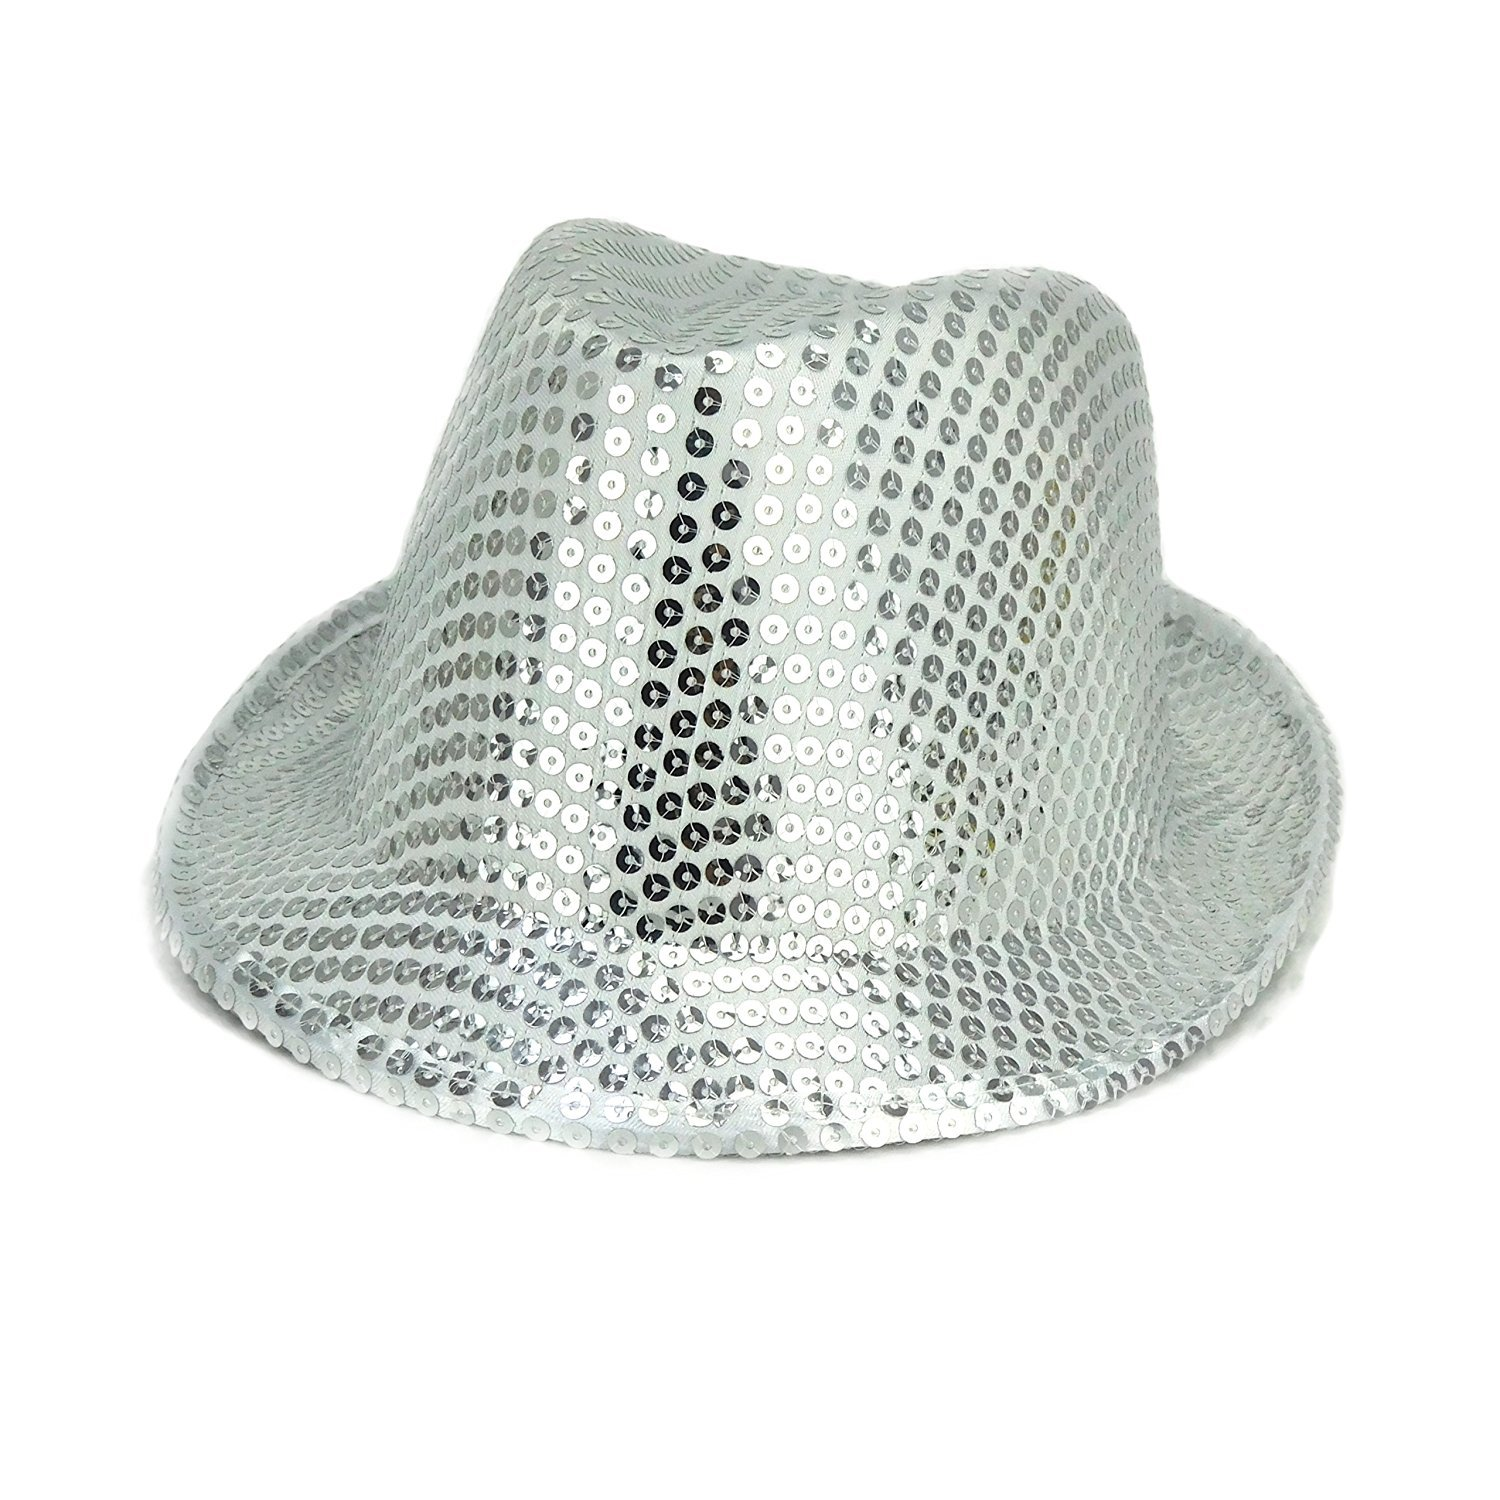 Pack Of 24 - 27cm x 14cm Silver Sequin Trilby Hats - Fancy Dress - Stag / Hen Night Accessories